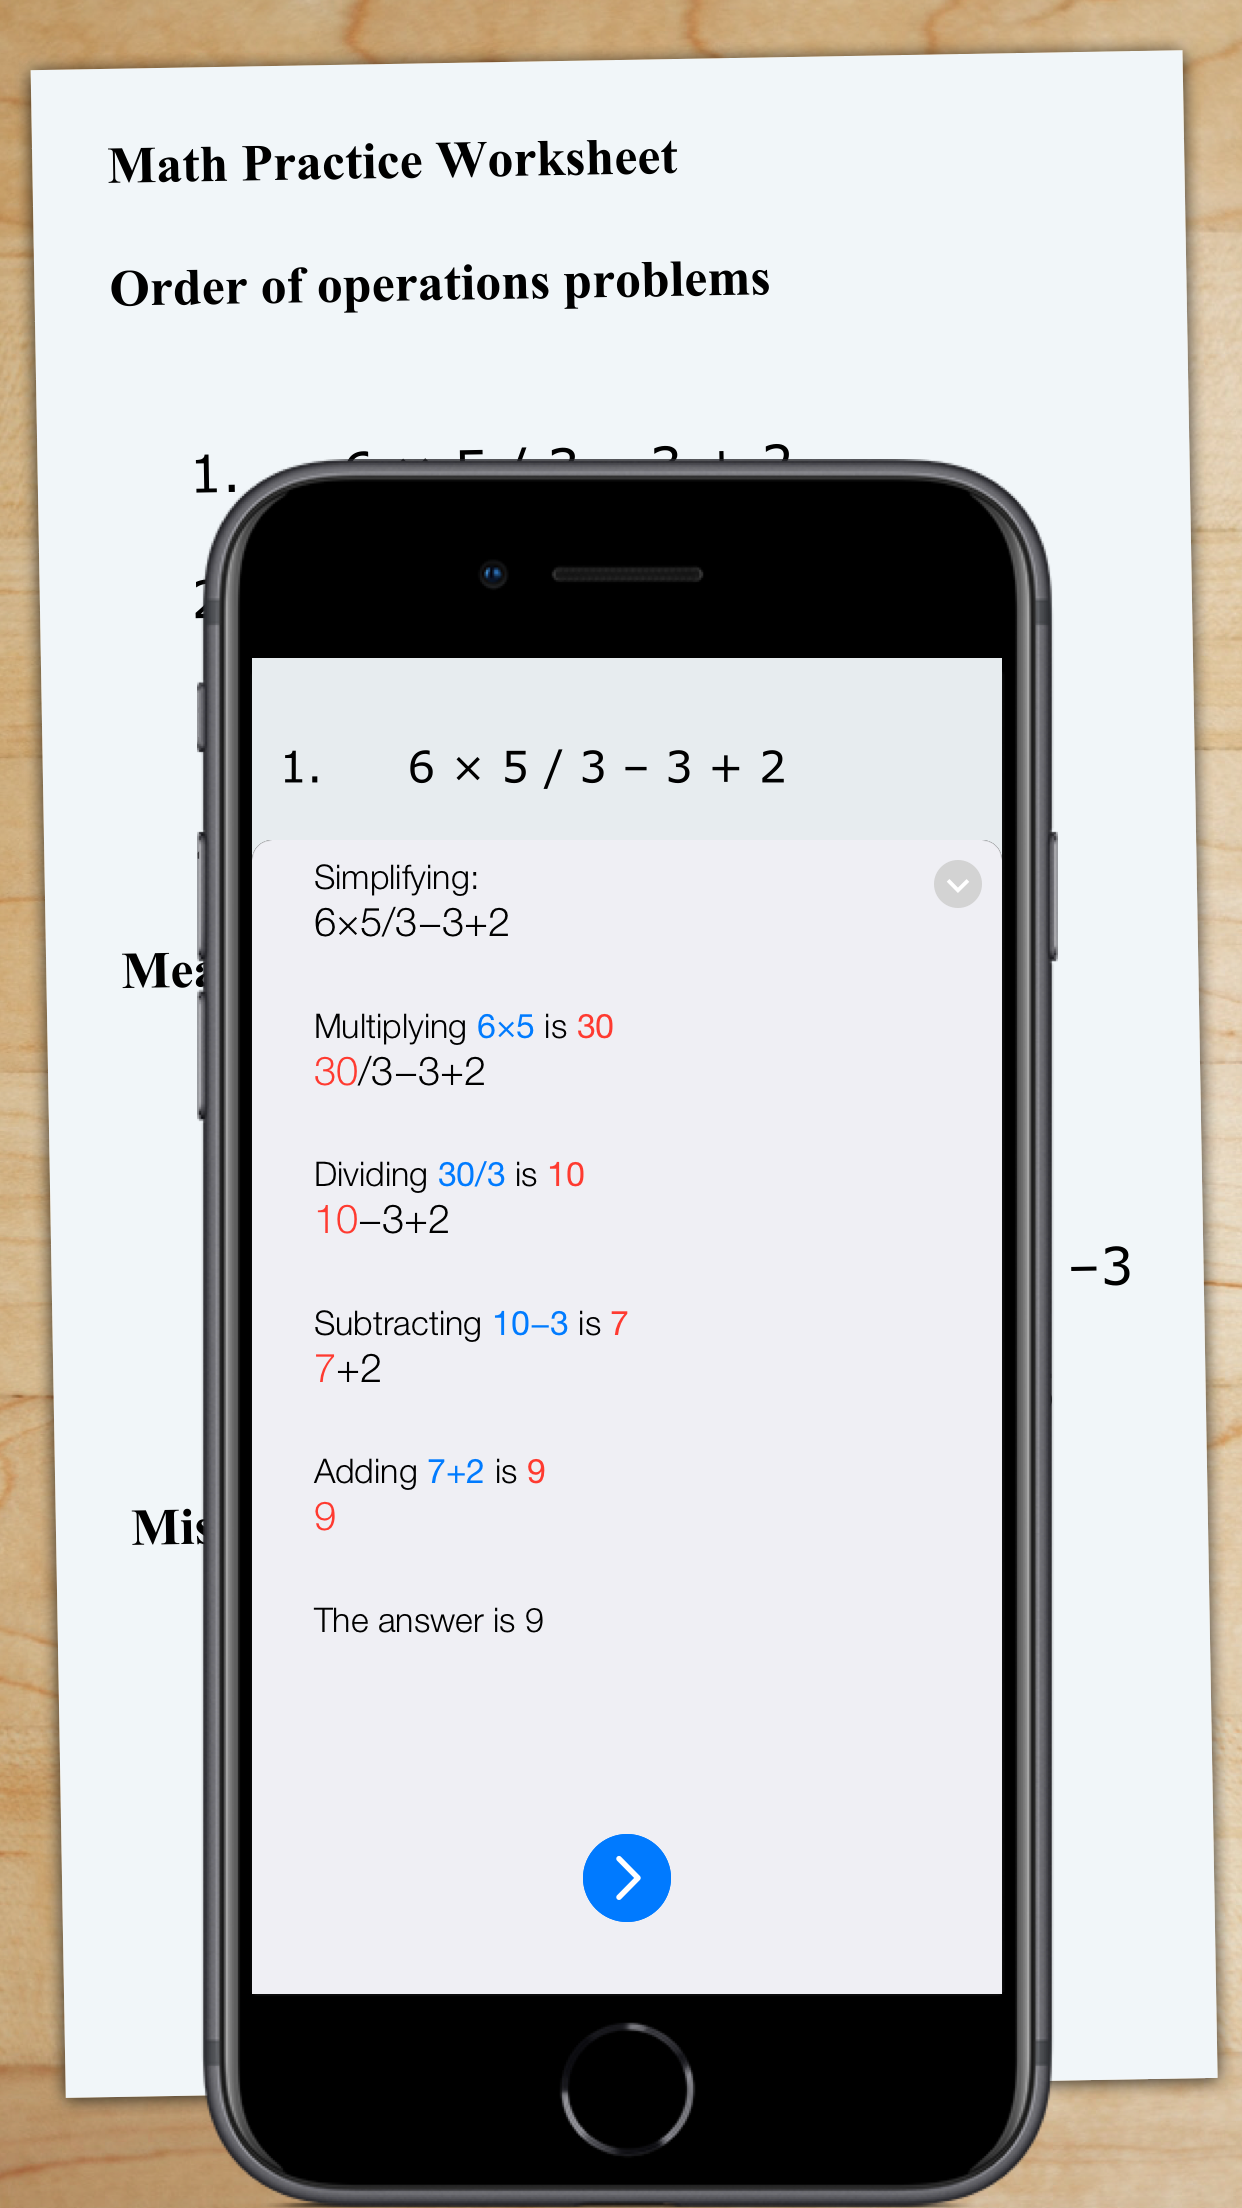 App Store iPhone Screenshot 2 Solved Problem View.png